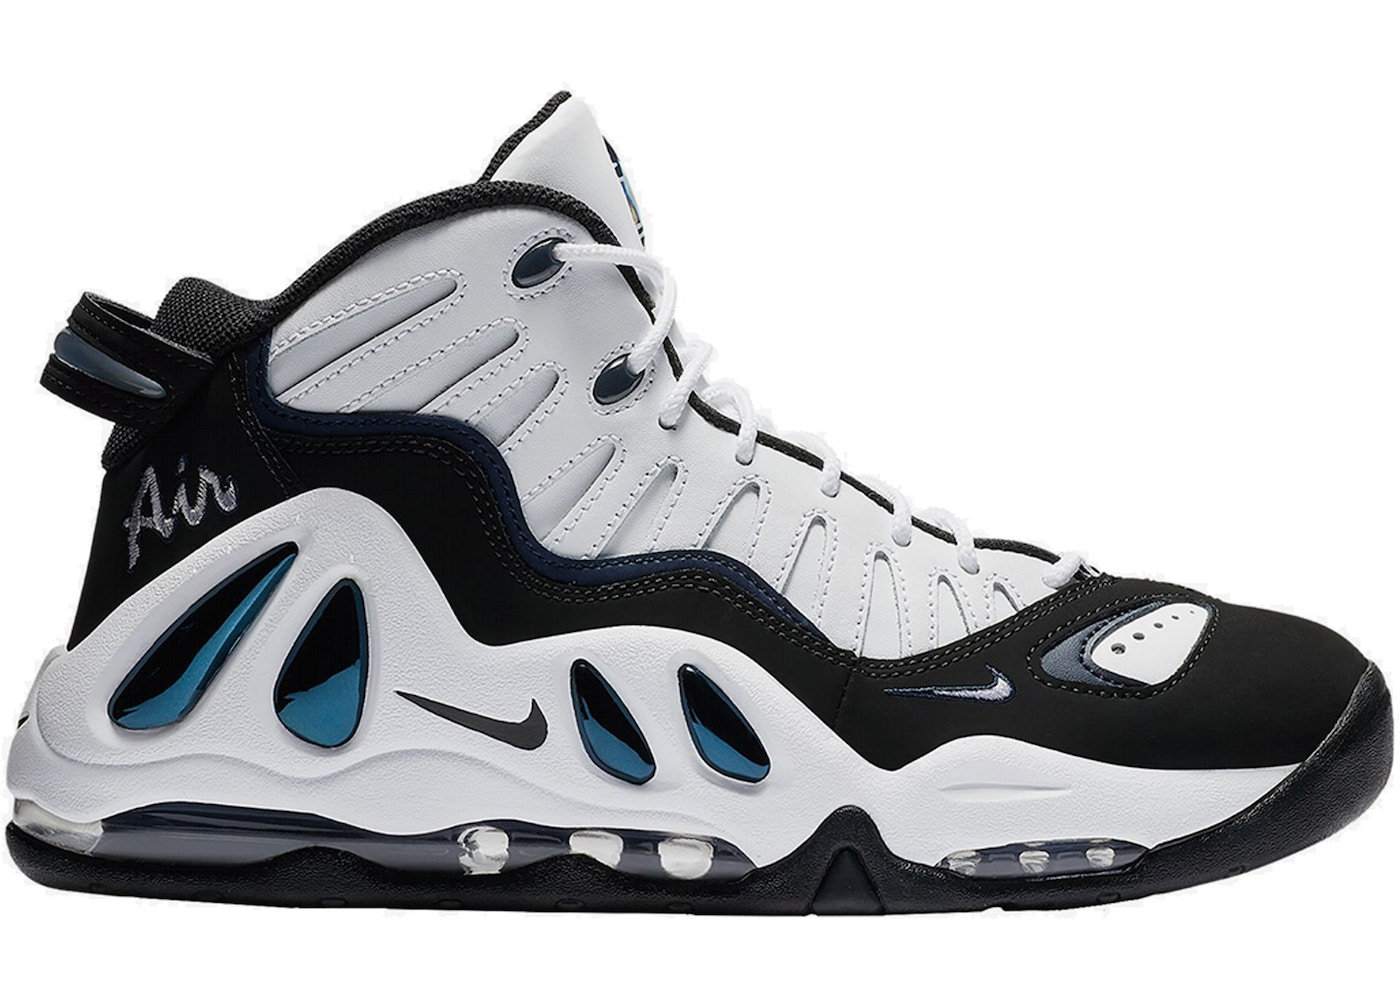 Air Max Uptempo 97 White Black College Navy (2018) - 399207-101 99cd81d1bc61